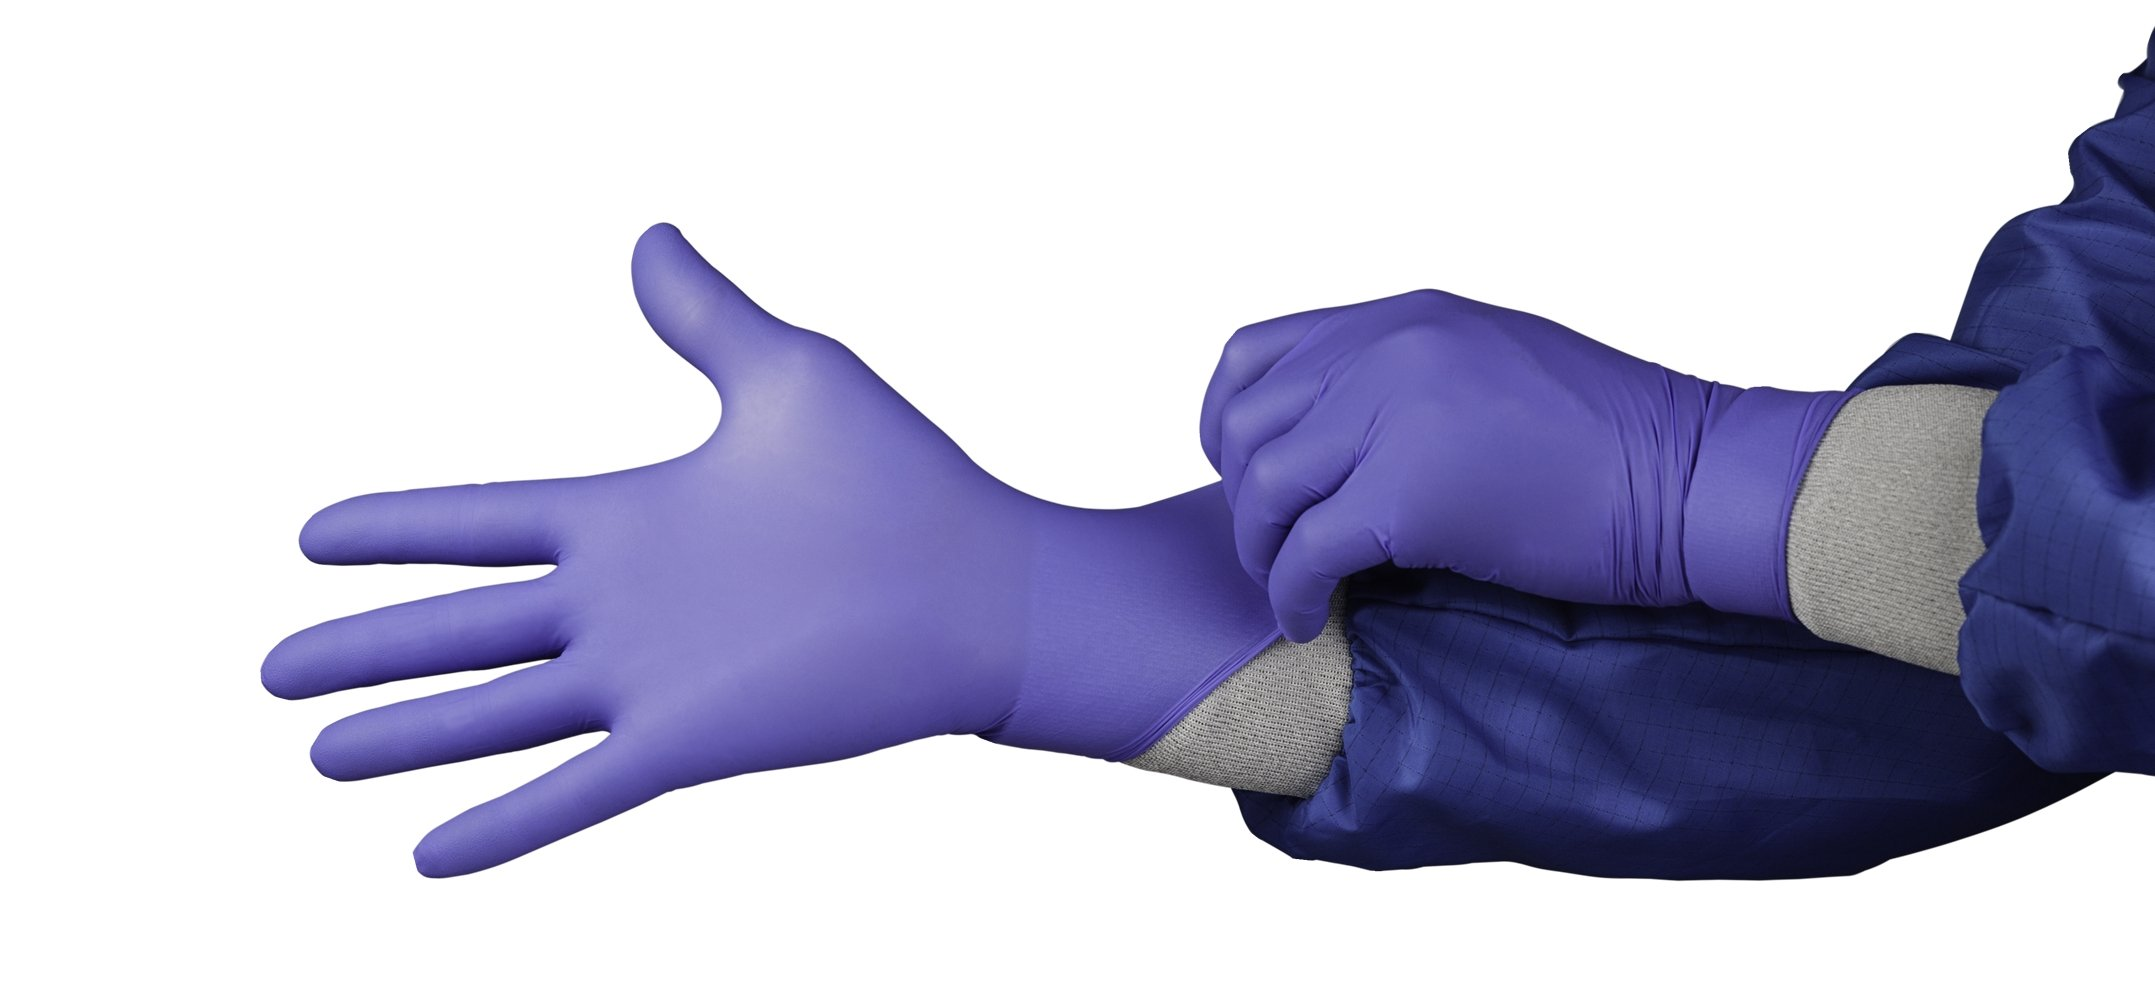 HandPRO Series 1750 Nitrile Ambidextrous Controlled Environment Glove, Powder Free, 240mm Length, Large, Blue (Pack of 1000)